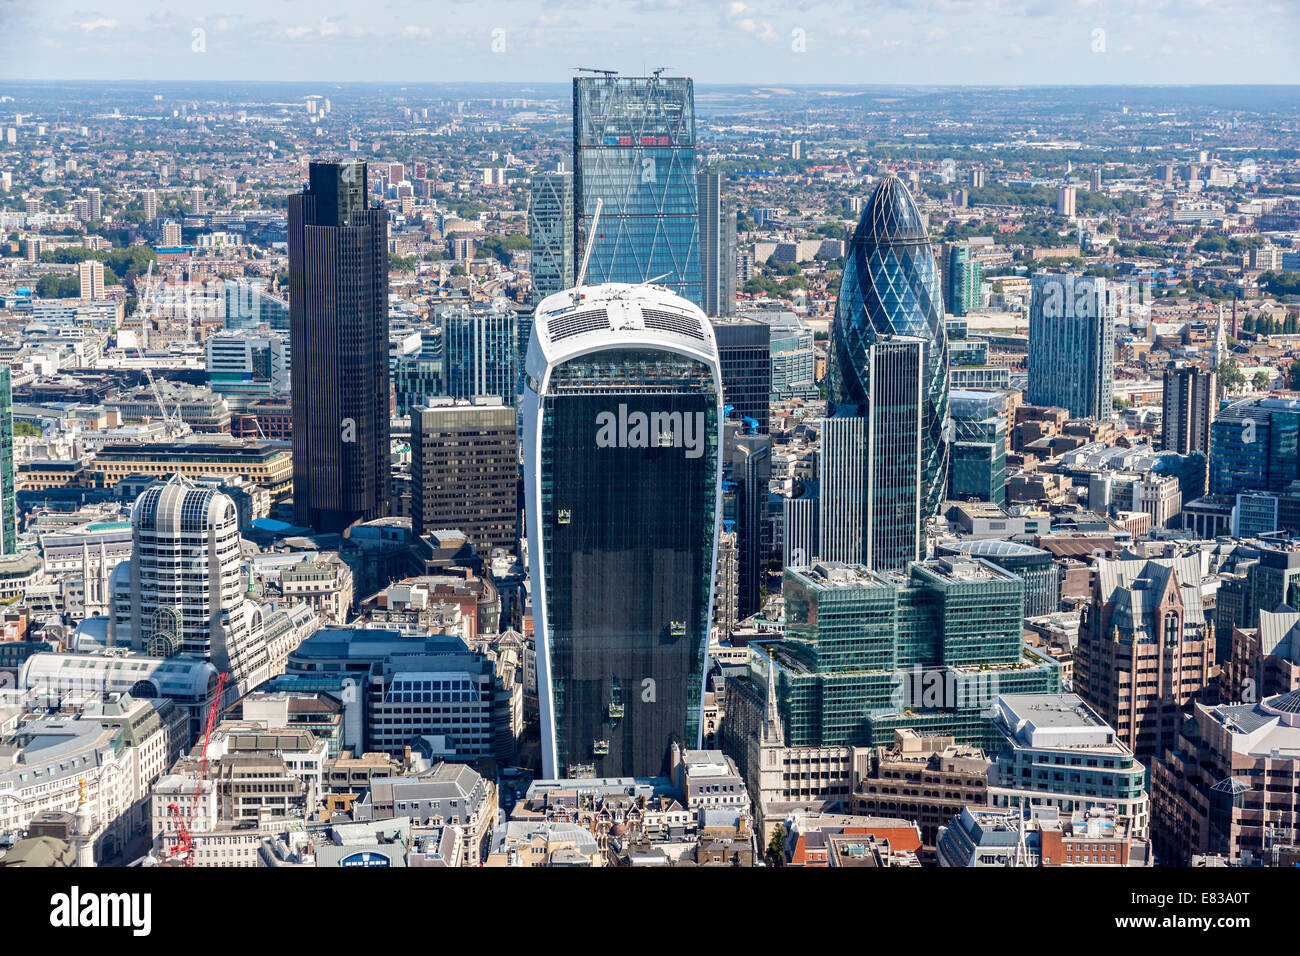 The City of London is the main financial district of London and vies with New York City as the financial capital - Stock Image